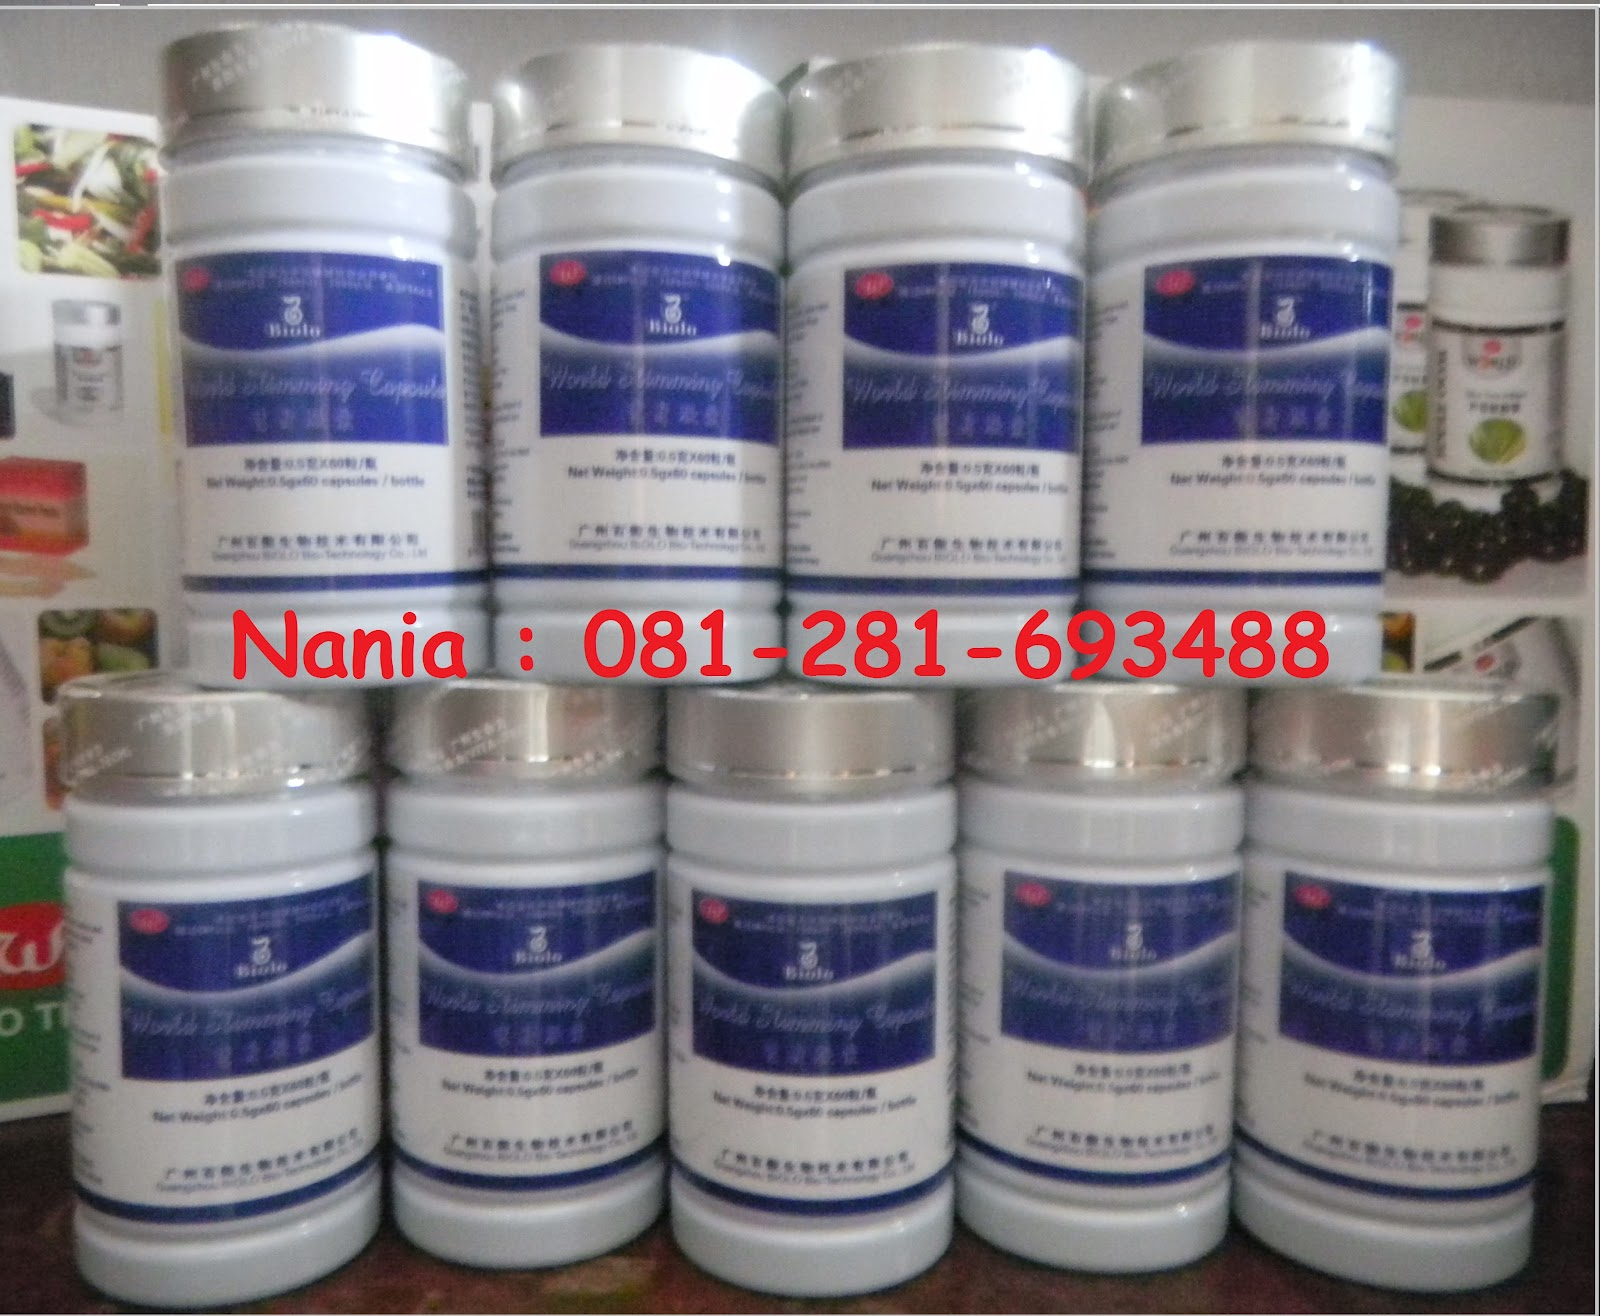 Biolo WorldSlimmingCapsule hp-082291161299 pin BB 2bd80eff ...